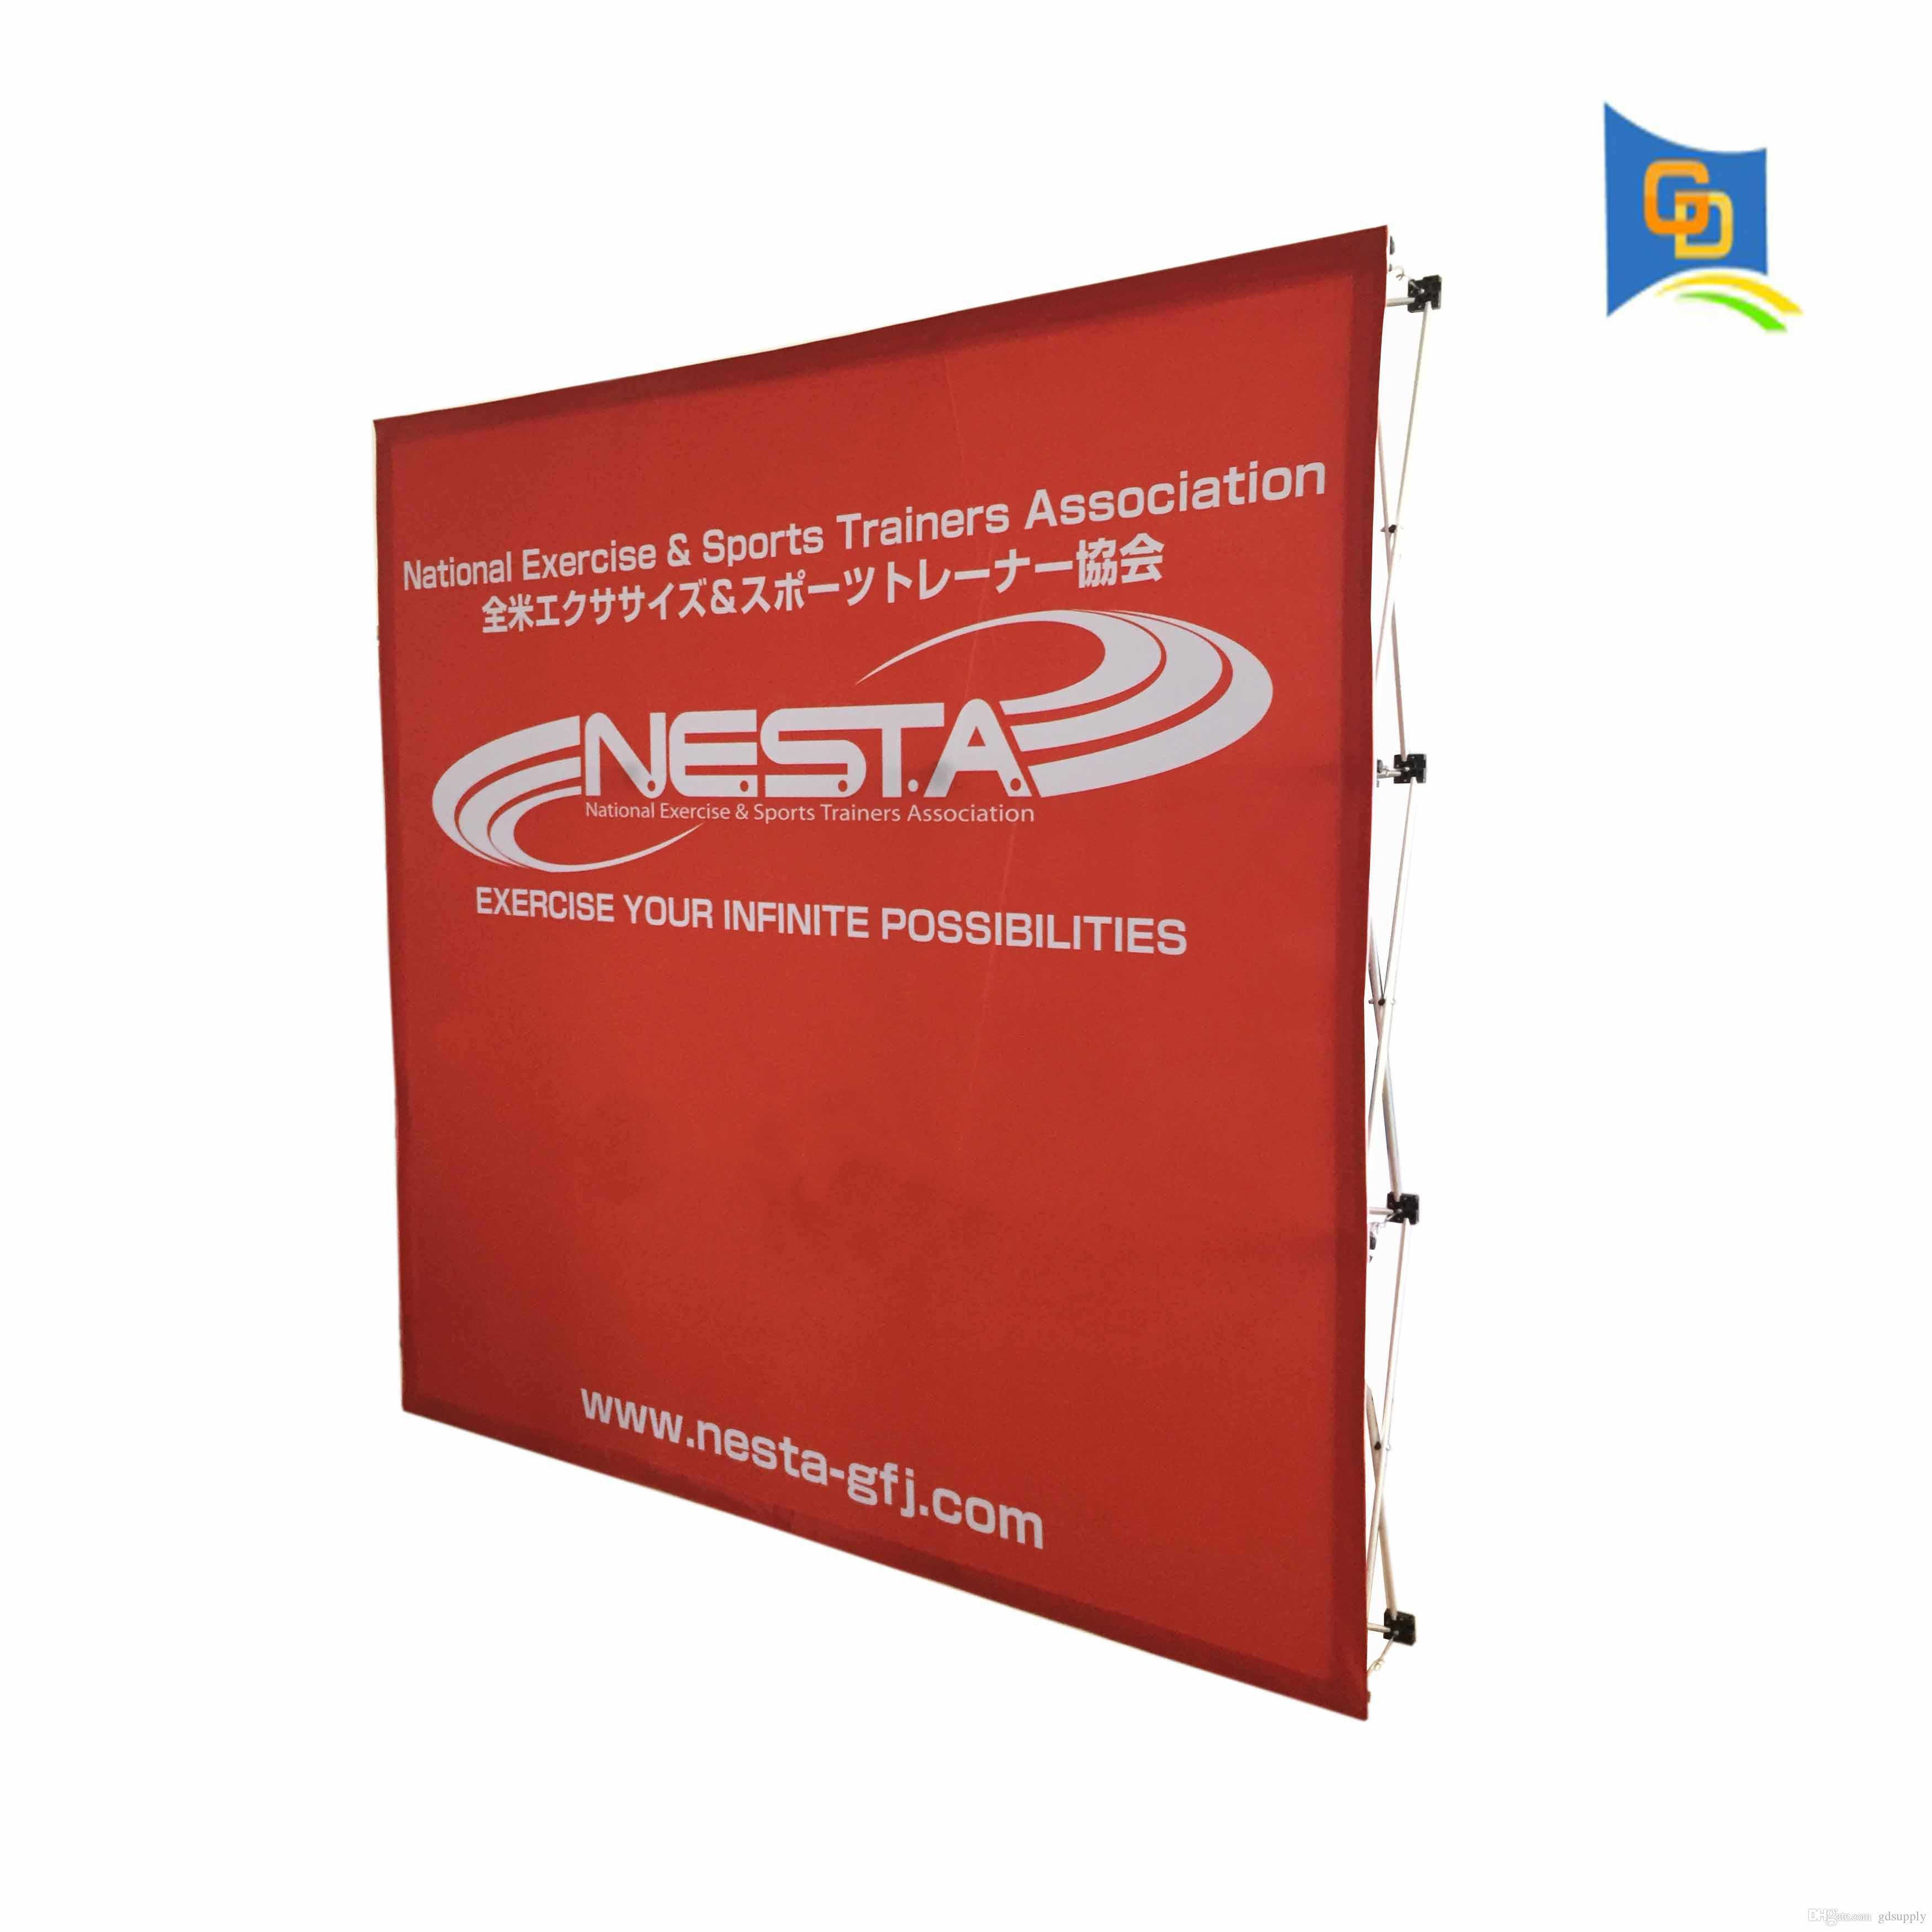 Fabric Exhibition Stand Up : Cm exhibition booth fabric pop up display banner stand